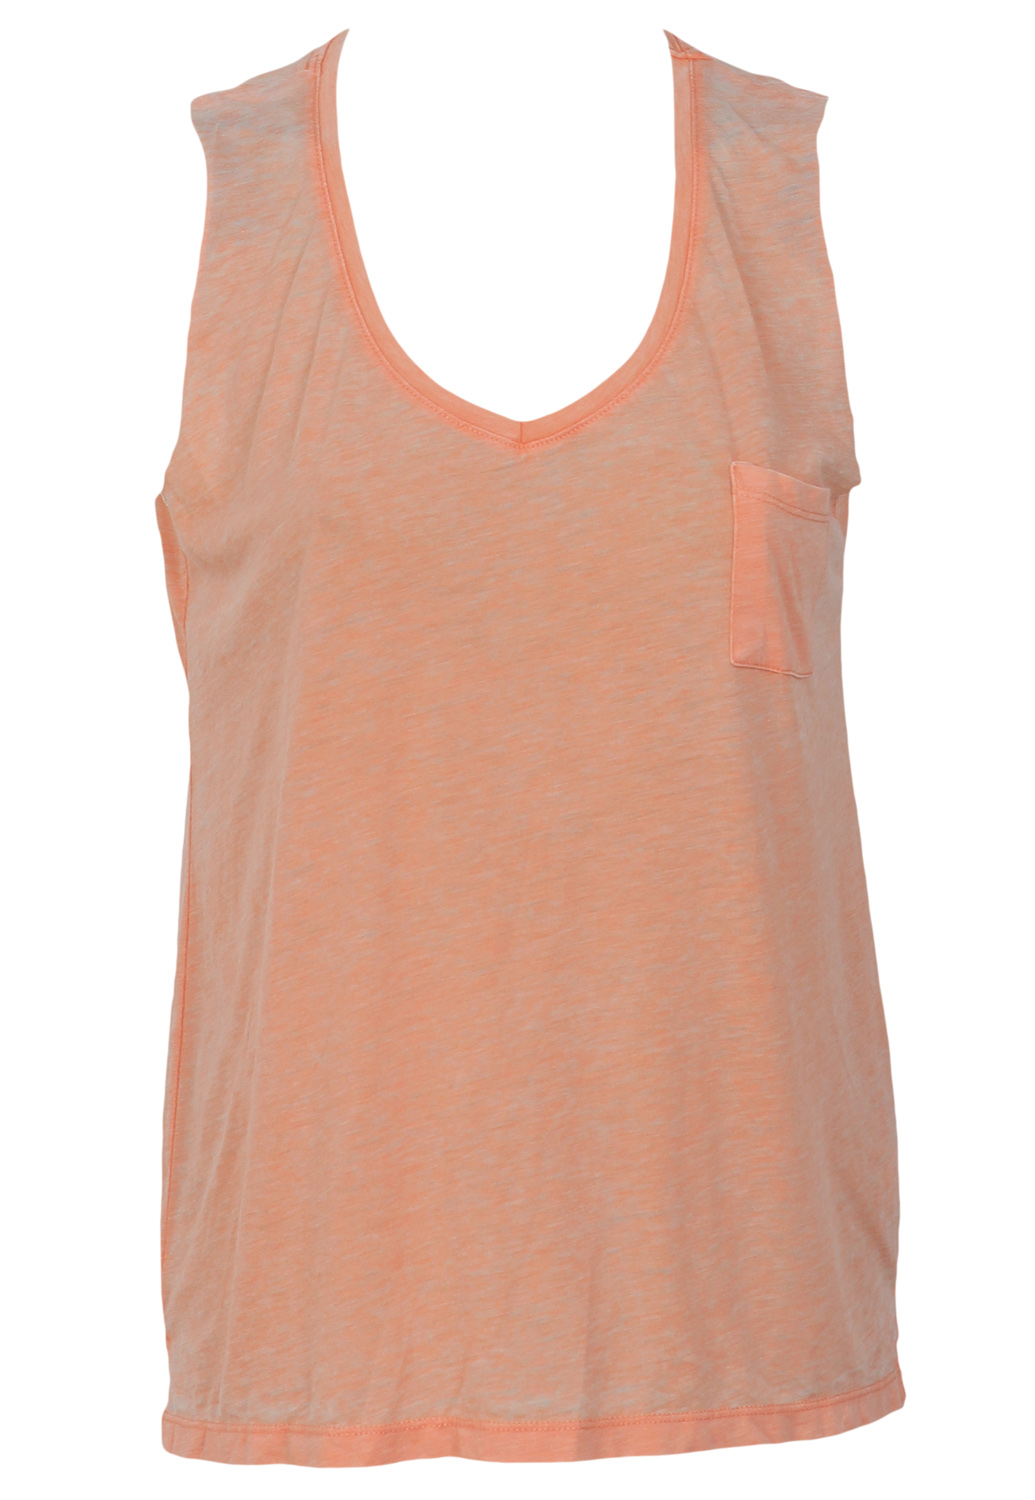 Maieu Bershka Collection Orange